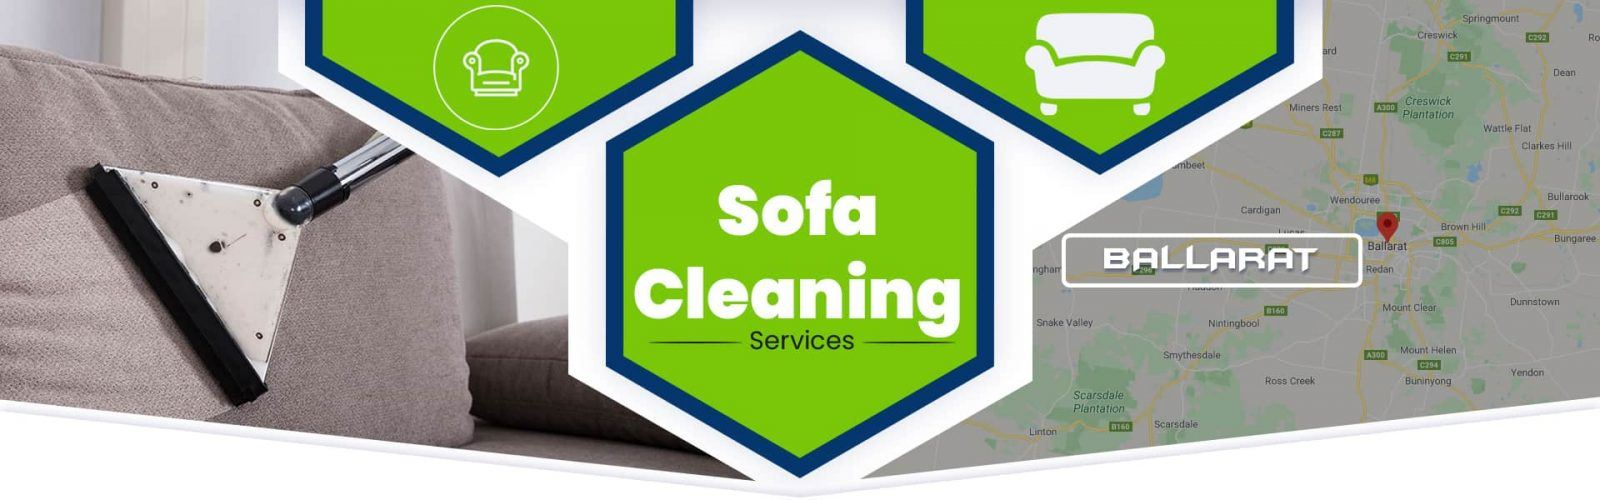 Sofa Cleaning Ballarat